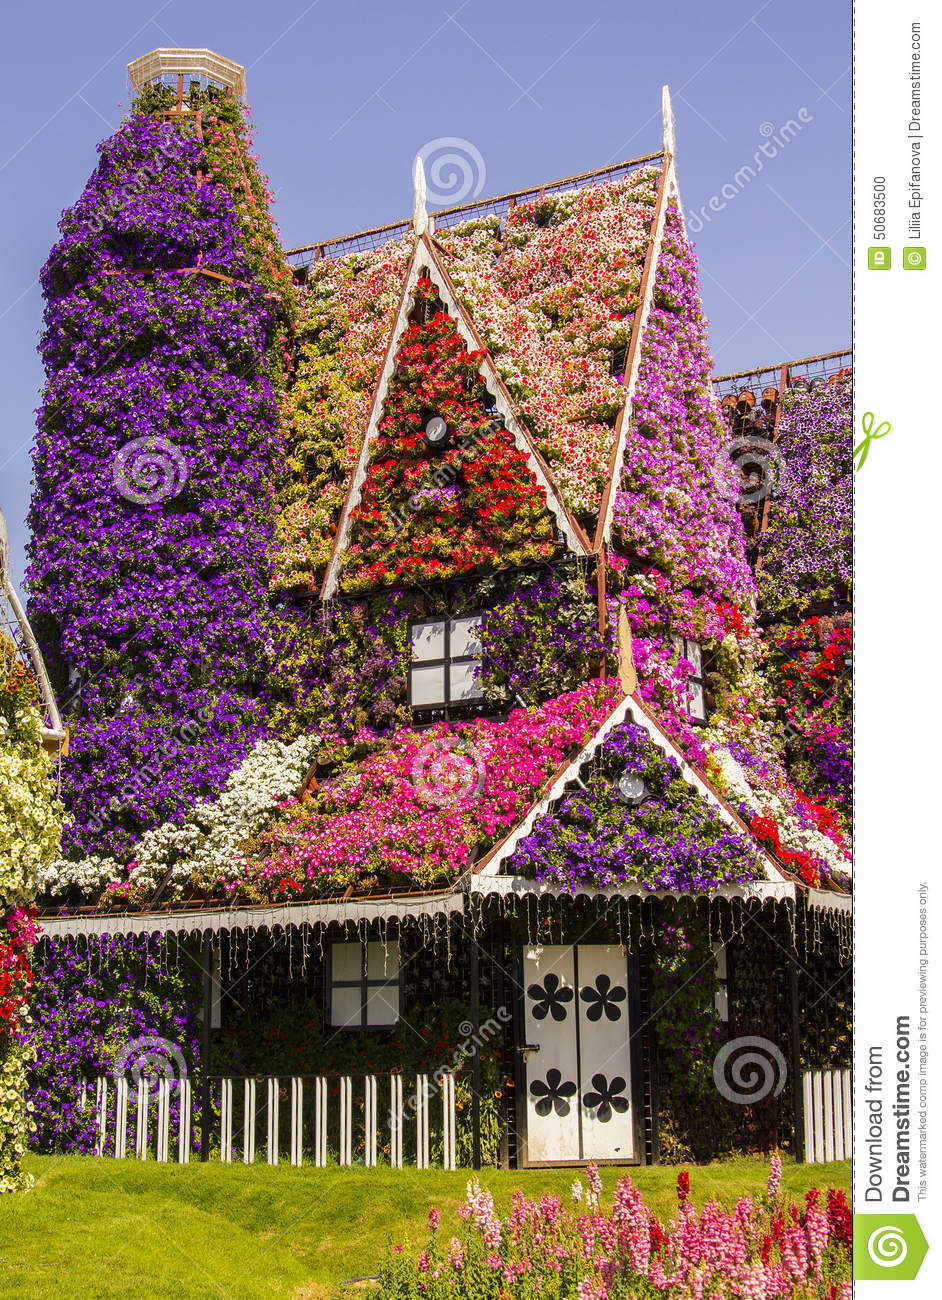 Amazing House Of Flowers In The Miracle Garden Park Stock